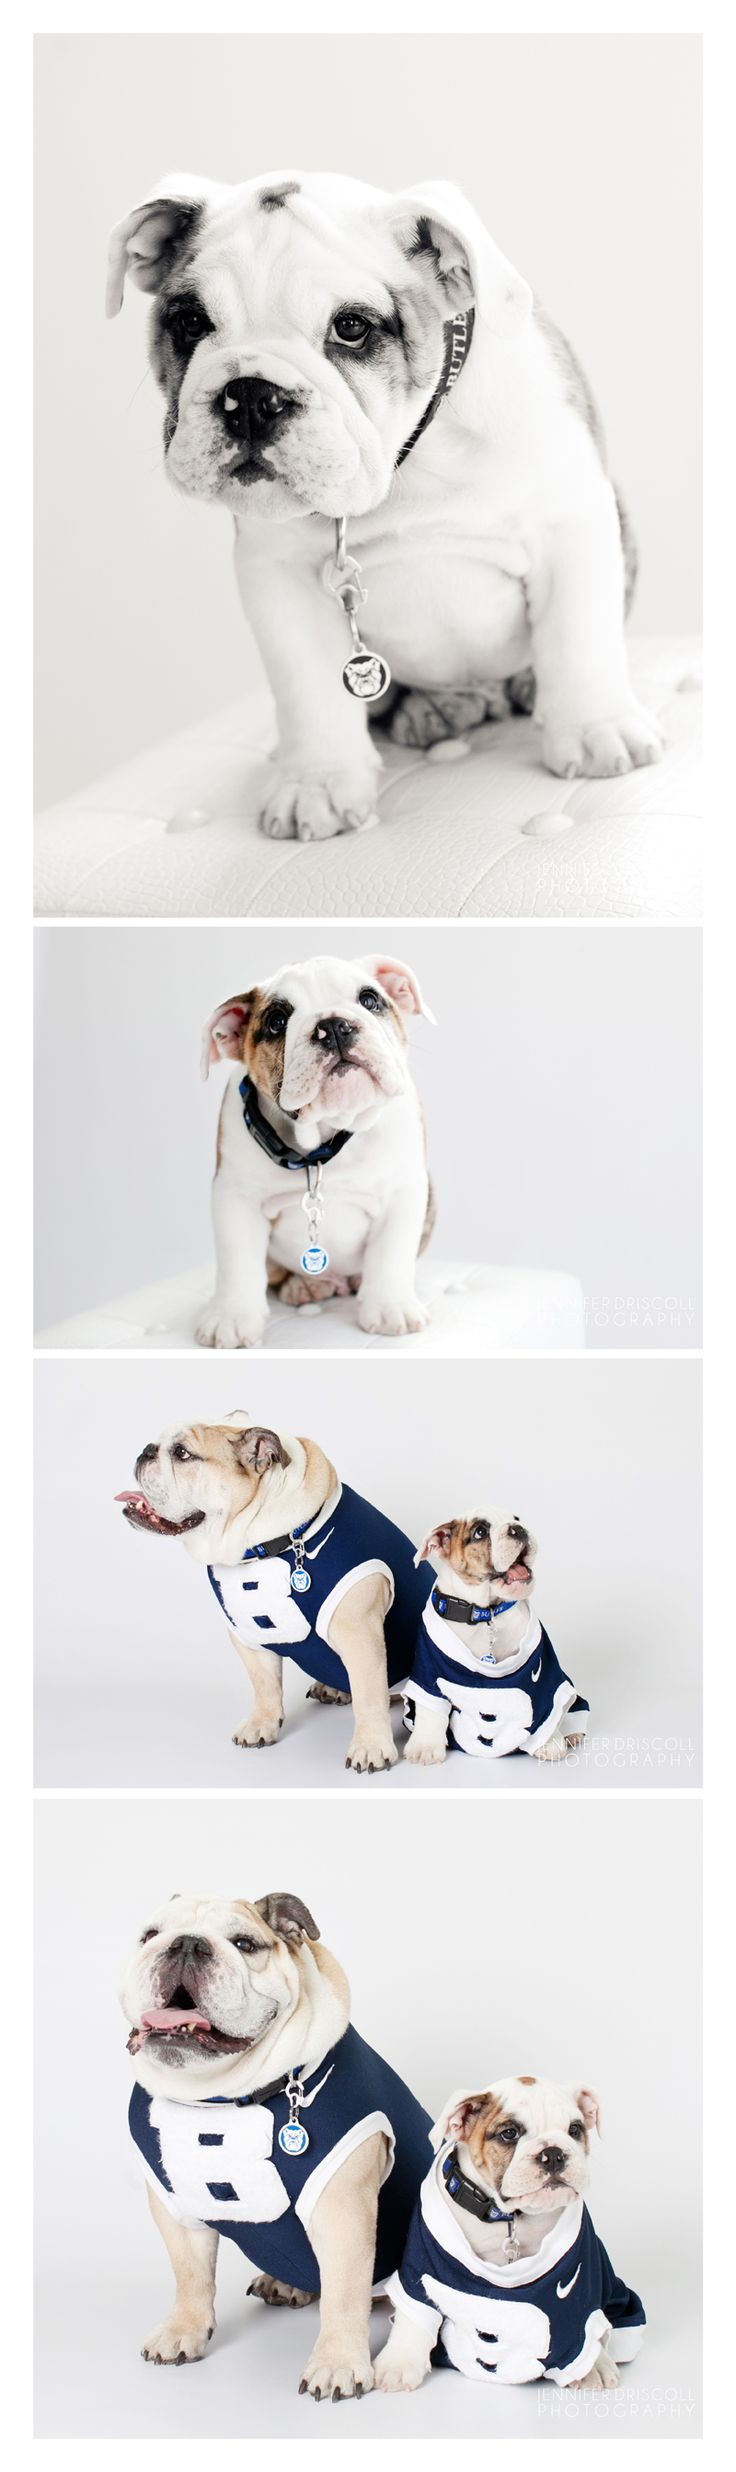 the awesome butler university mascots! so cute!